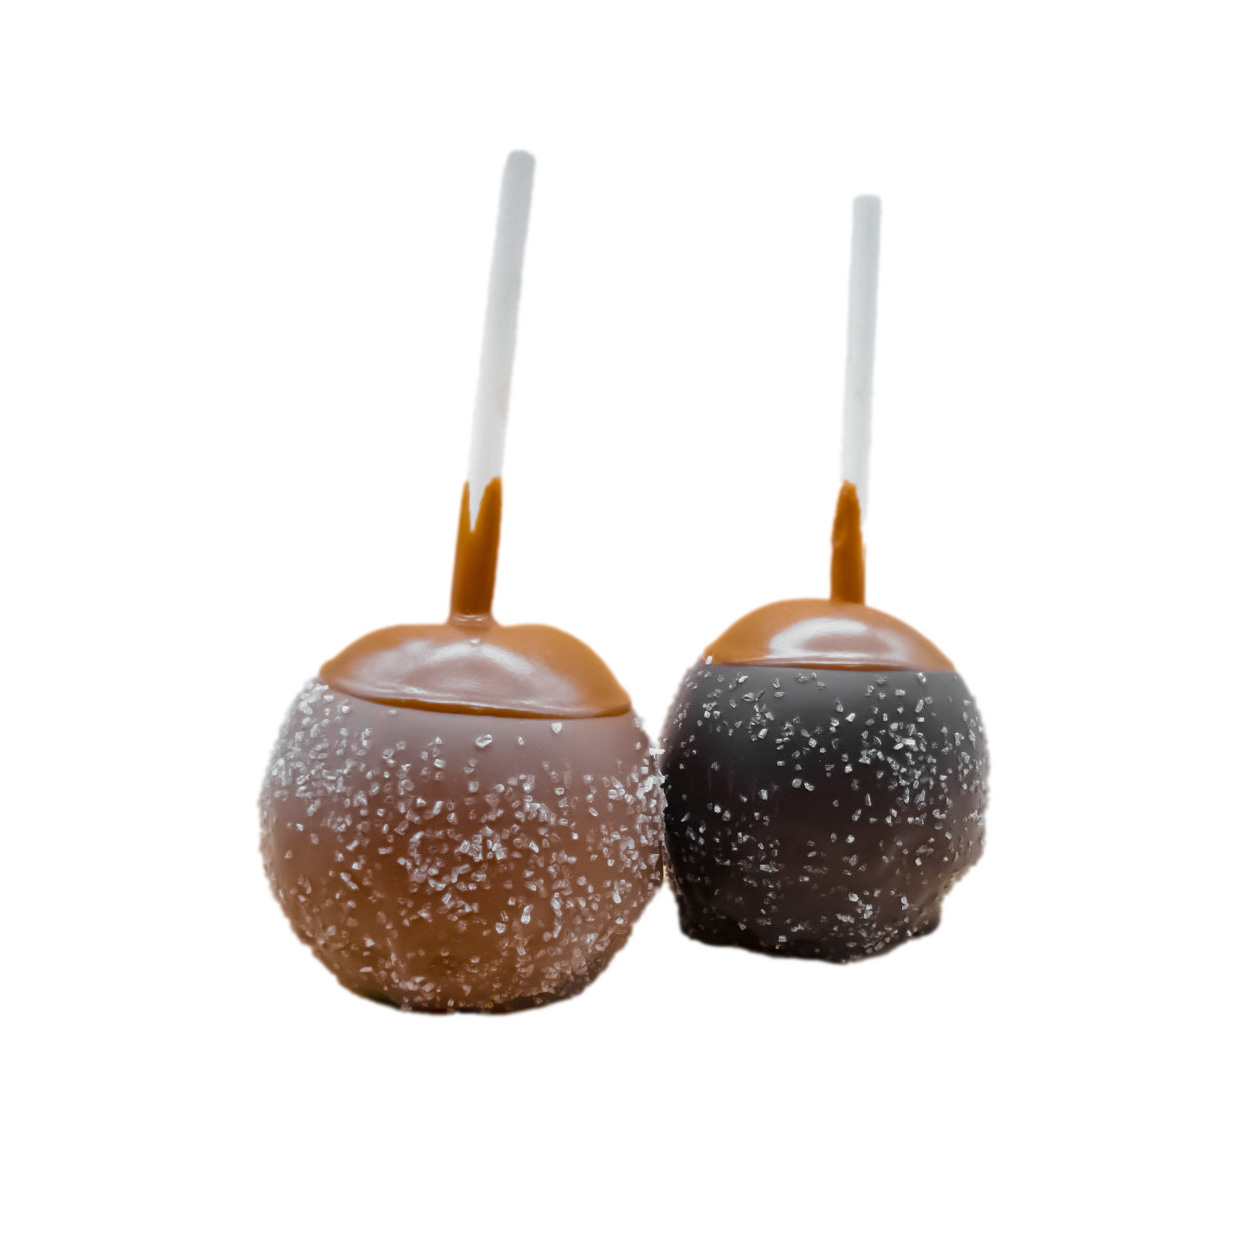 seasalt caramel apple